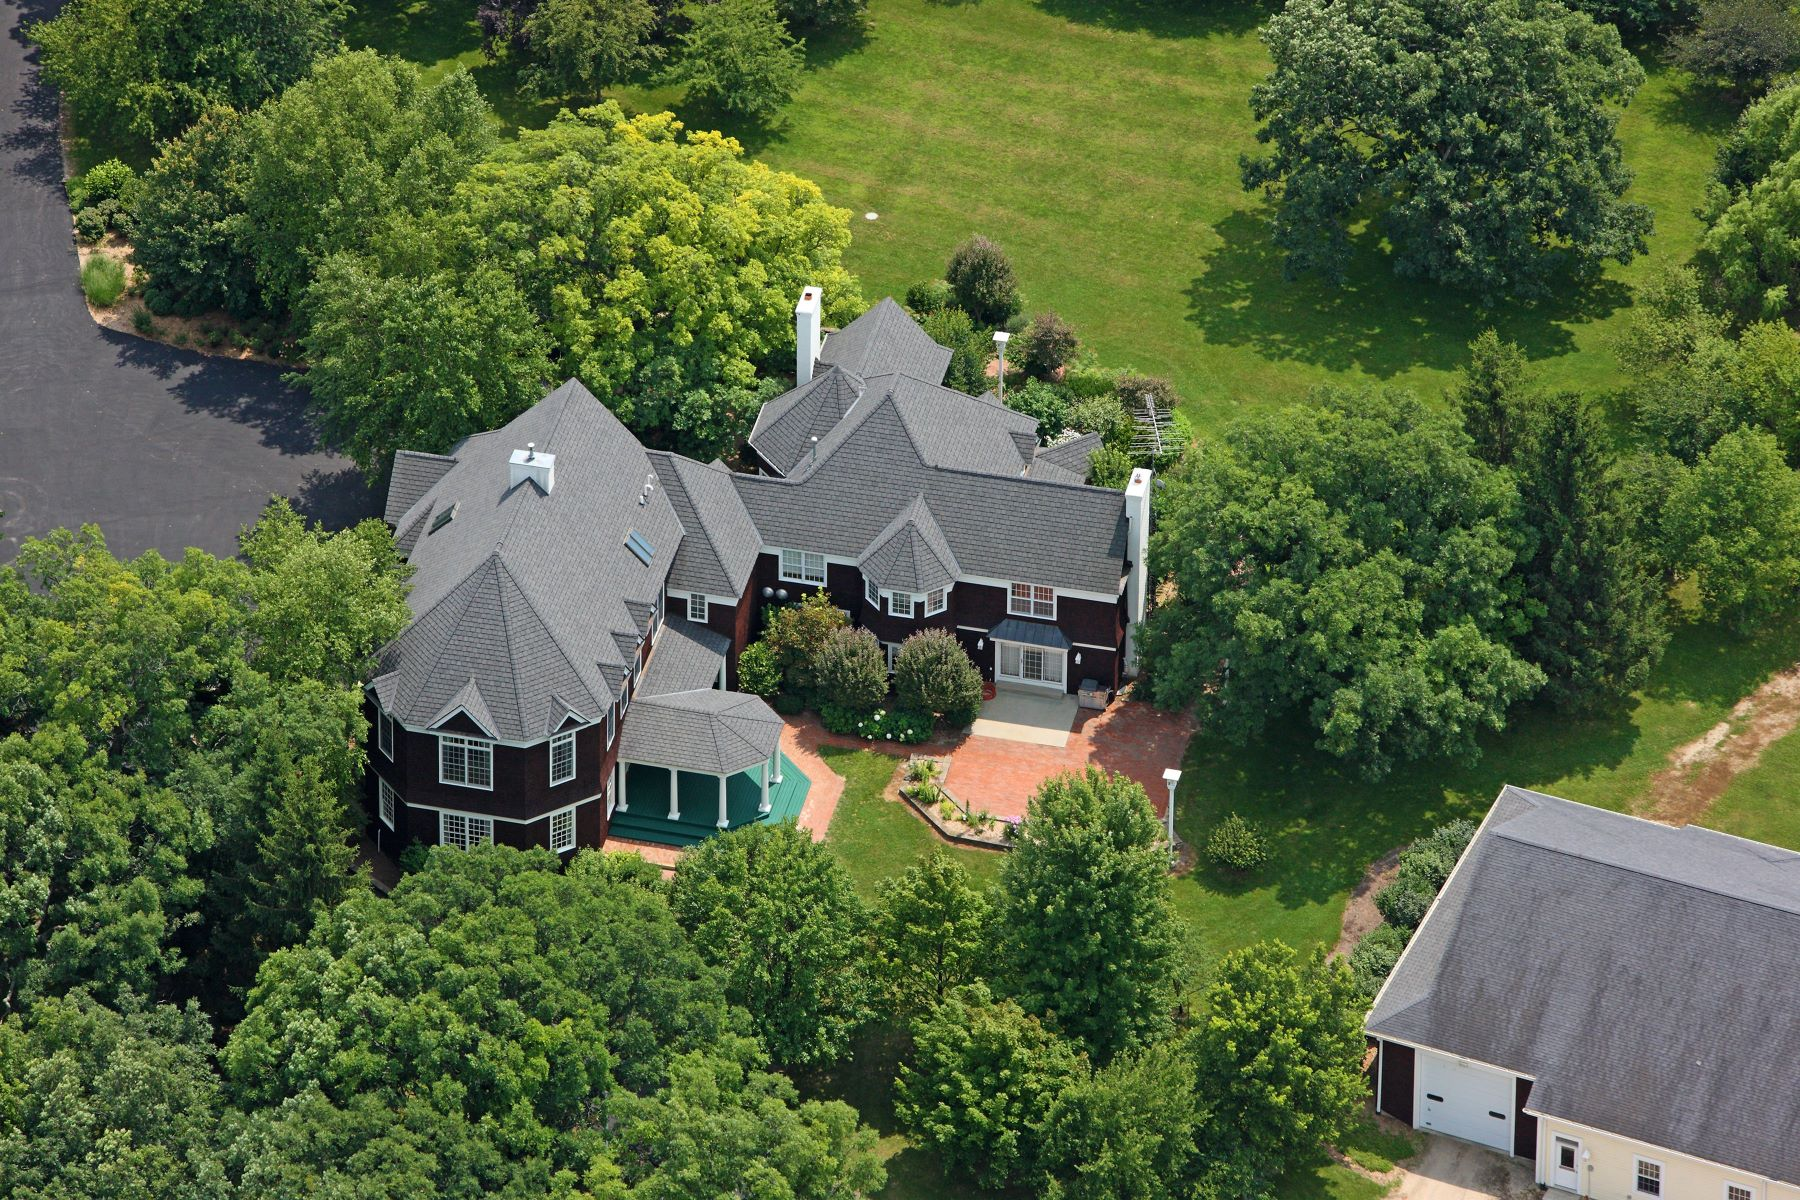 Single Family Homes for Sale at Stunning Cape Cod Estate 16556b County Line Road Capron, Illinois 61012 United States